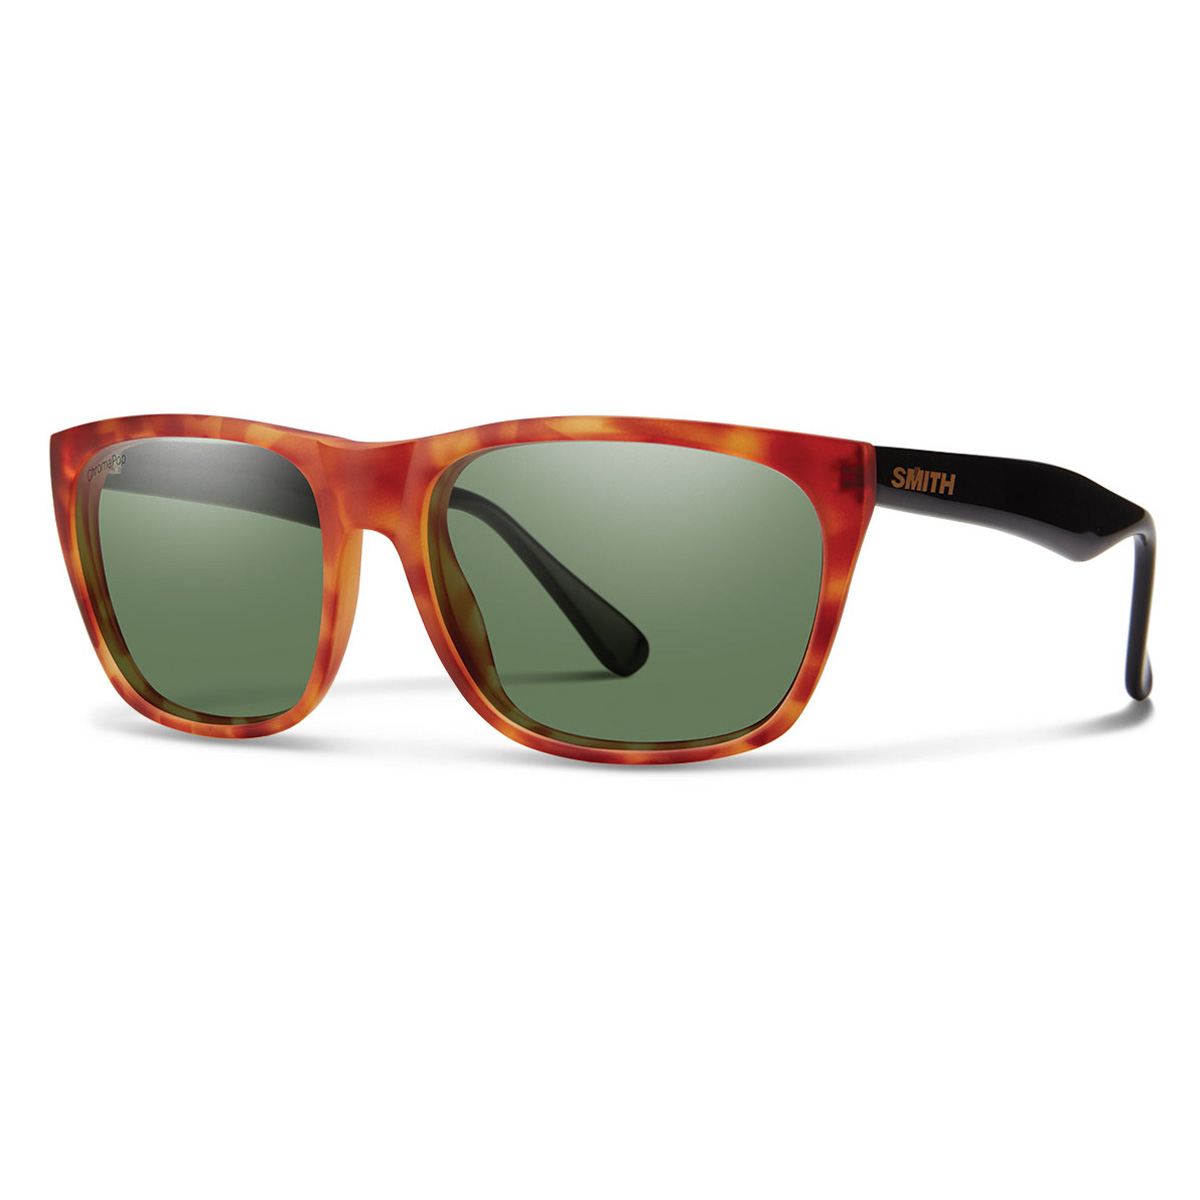 Matte Honey Tortois with Polarized Gray Green Lens